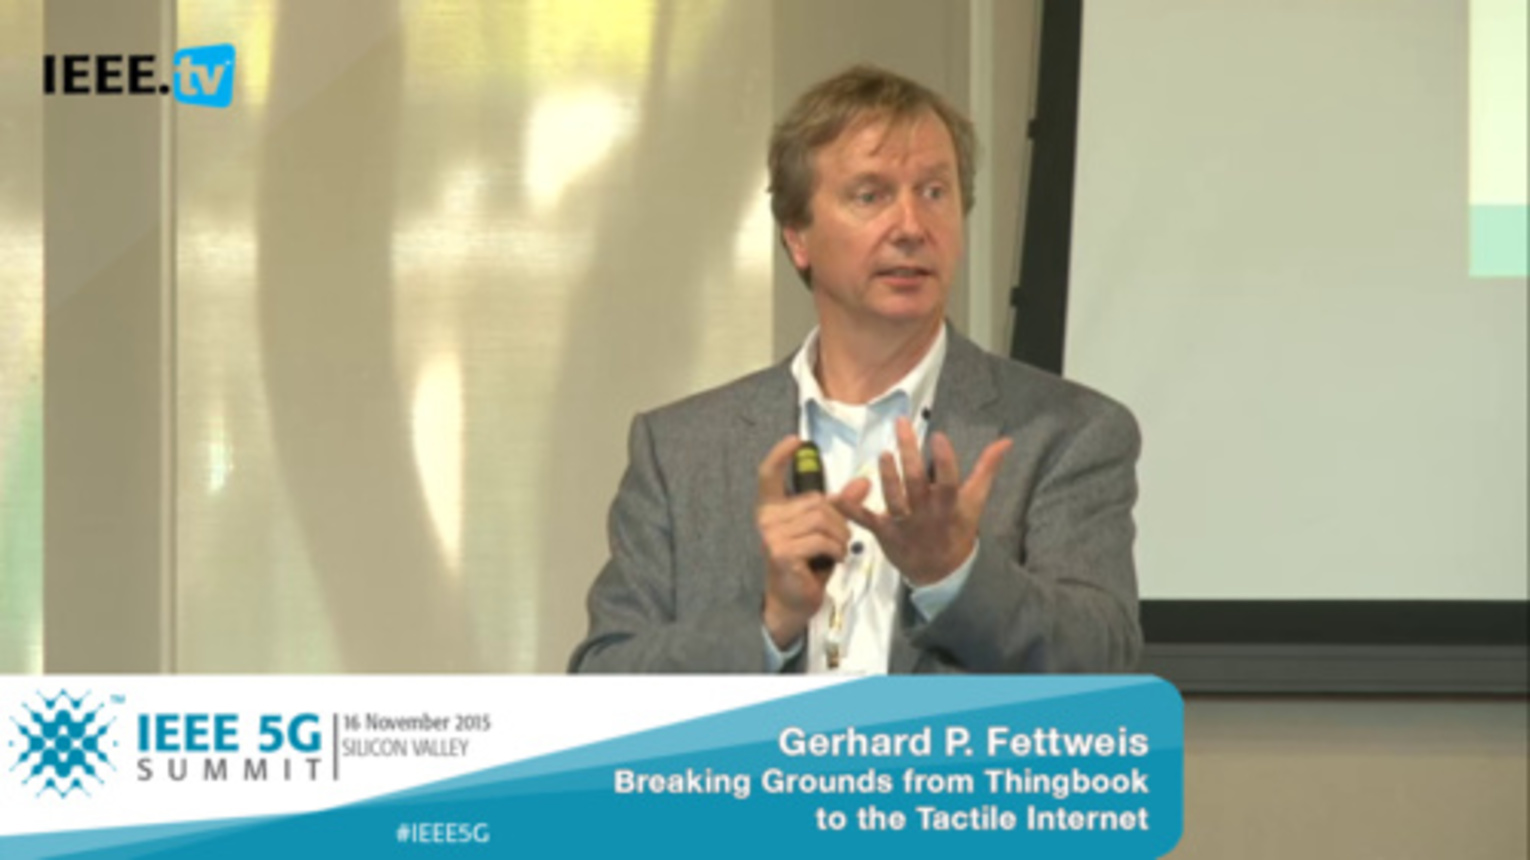 Silicon Valley 5G Summit 2015 - Gerhard P. Fettweis - 5G Technology: Breaking Grounds from Thingbook to the Tactile Internet